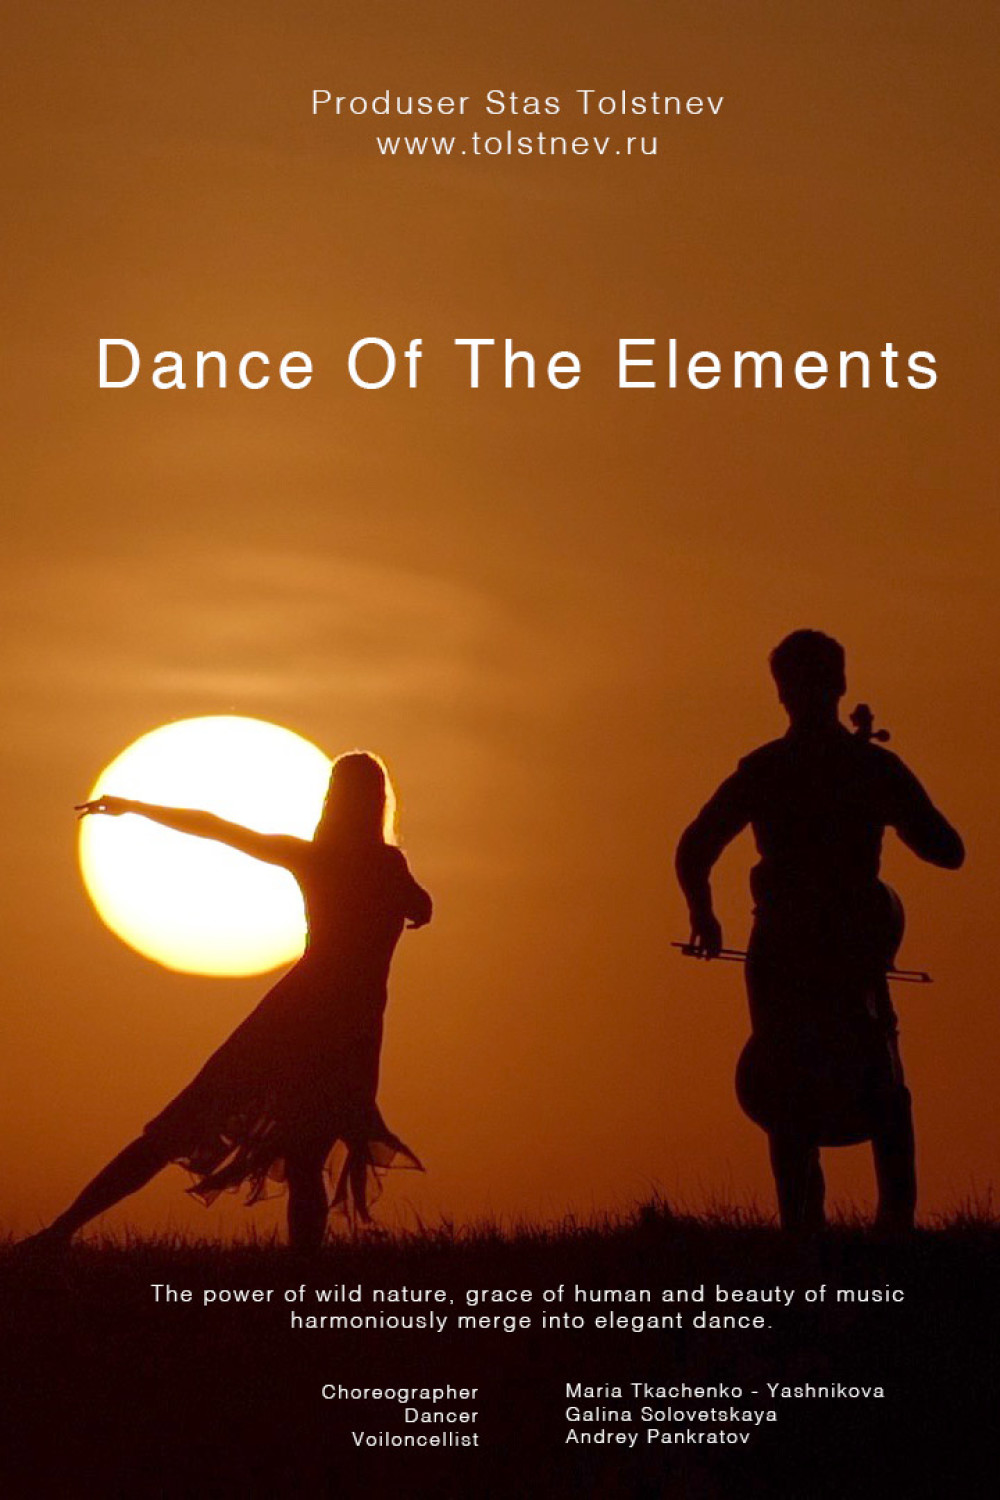 Dance of the Elements